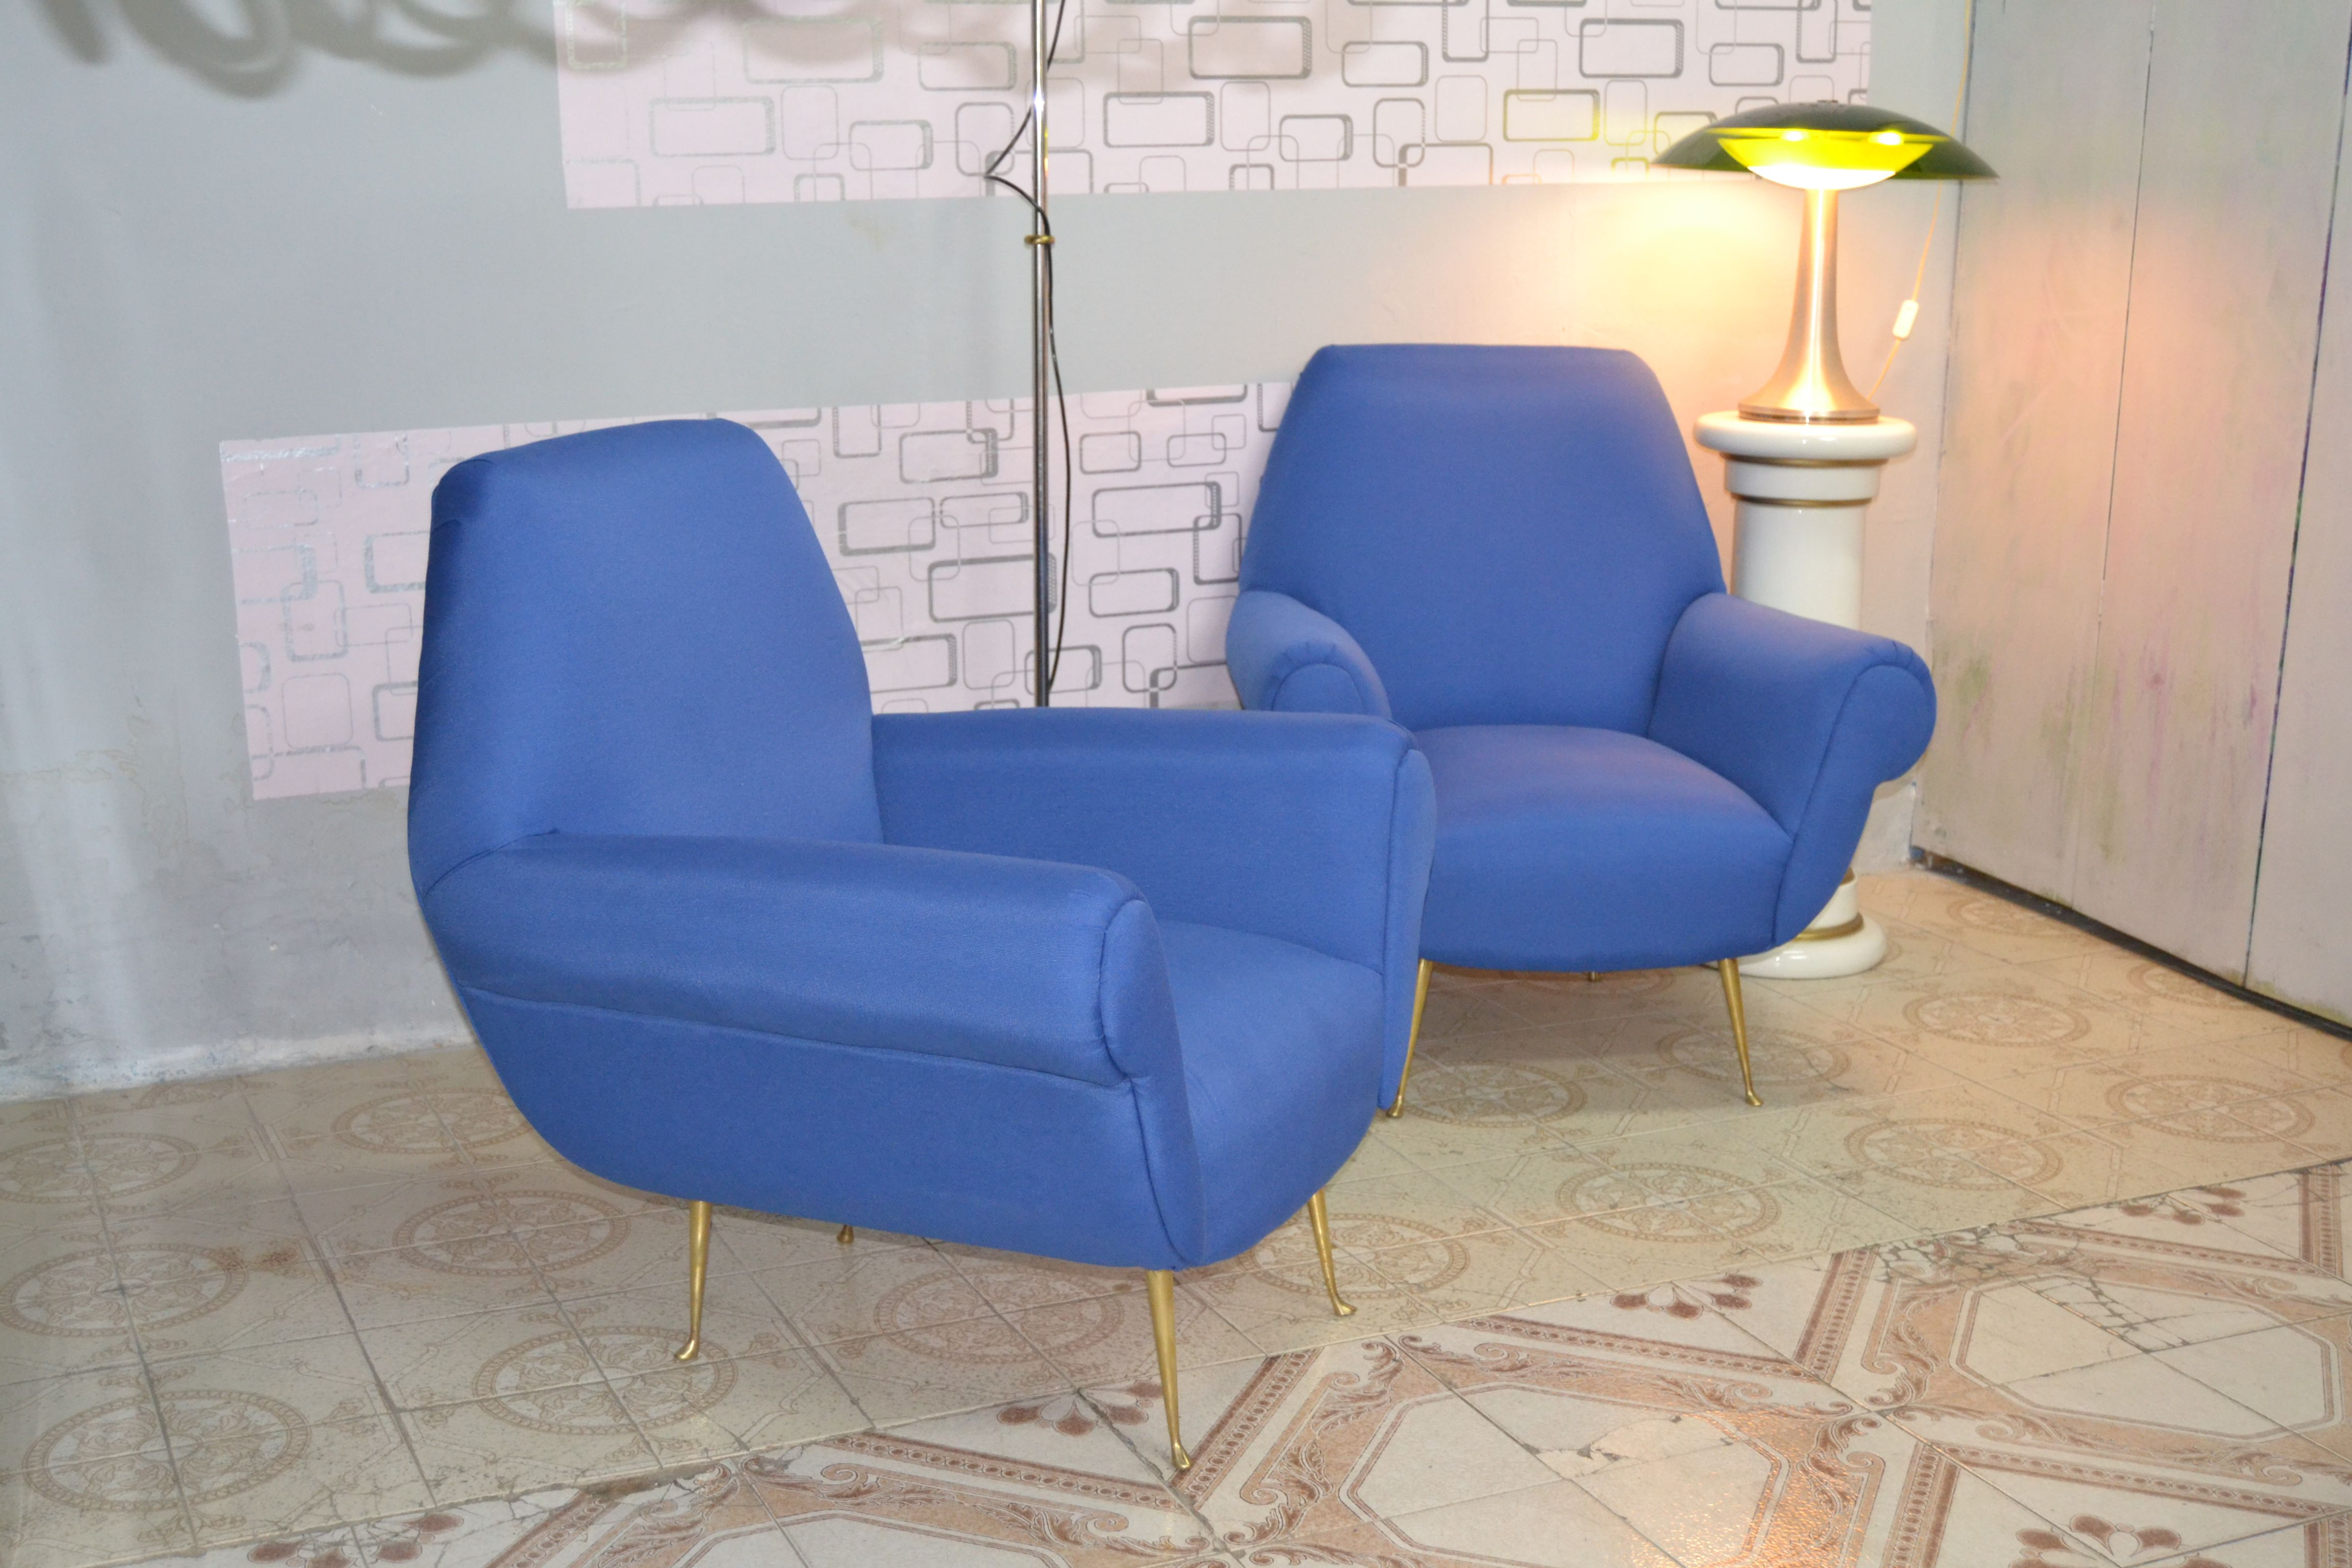 Coppia poltrone in velluto Pair of Armchairs by Gigi Radice for Minotti 1959 Mobili design 900